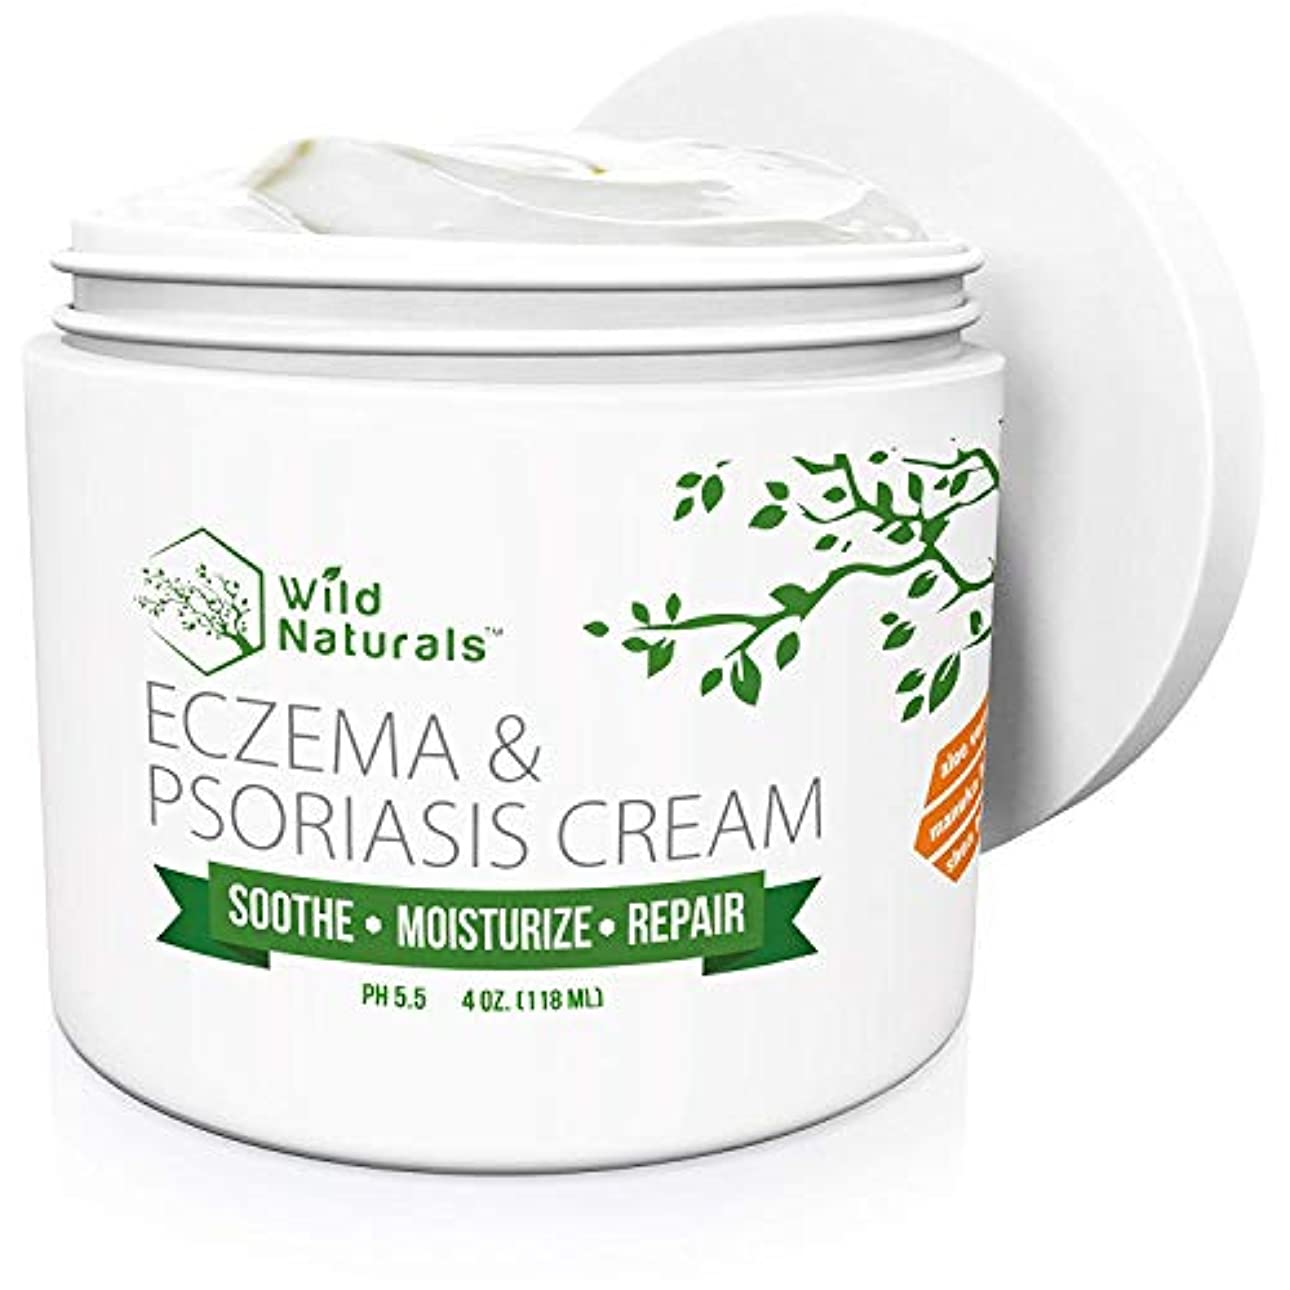 Wild Naturals Eczema Psoriasis Cream - for Dry, Irritated Skin, Itch Relief, Dermatitis, Rosacea, and Shingles...